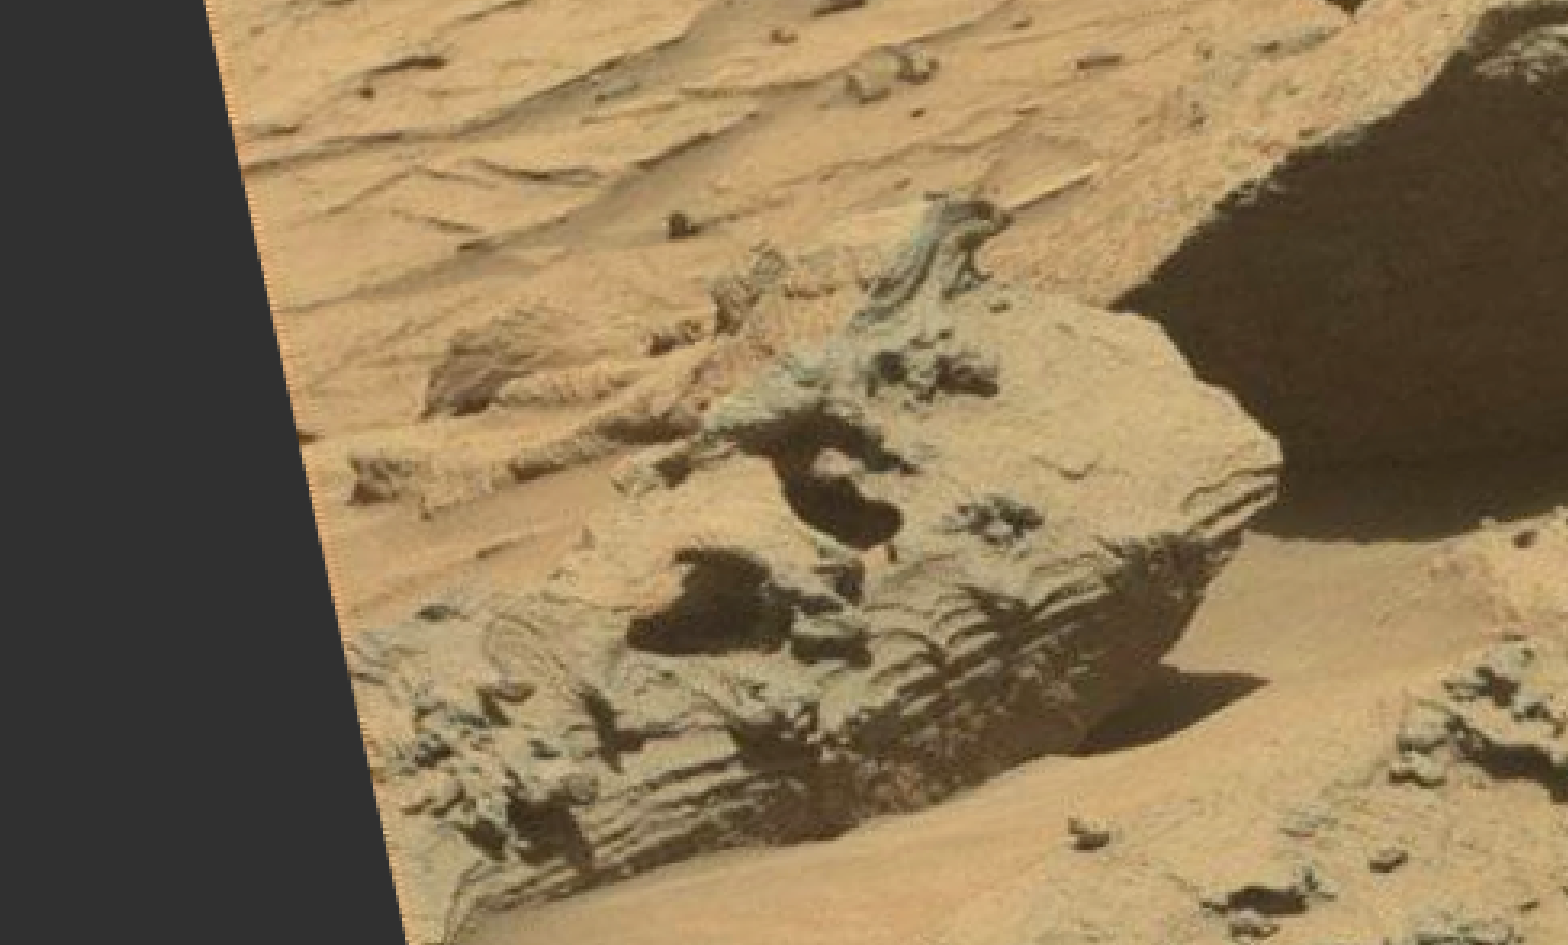 mars sol 1293 anomaly-artifacts 3 was life on mars